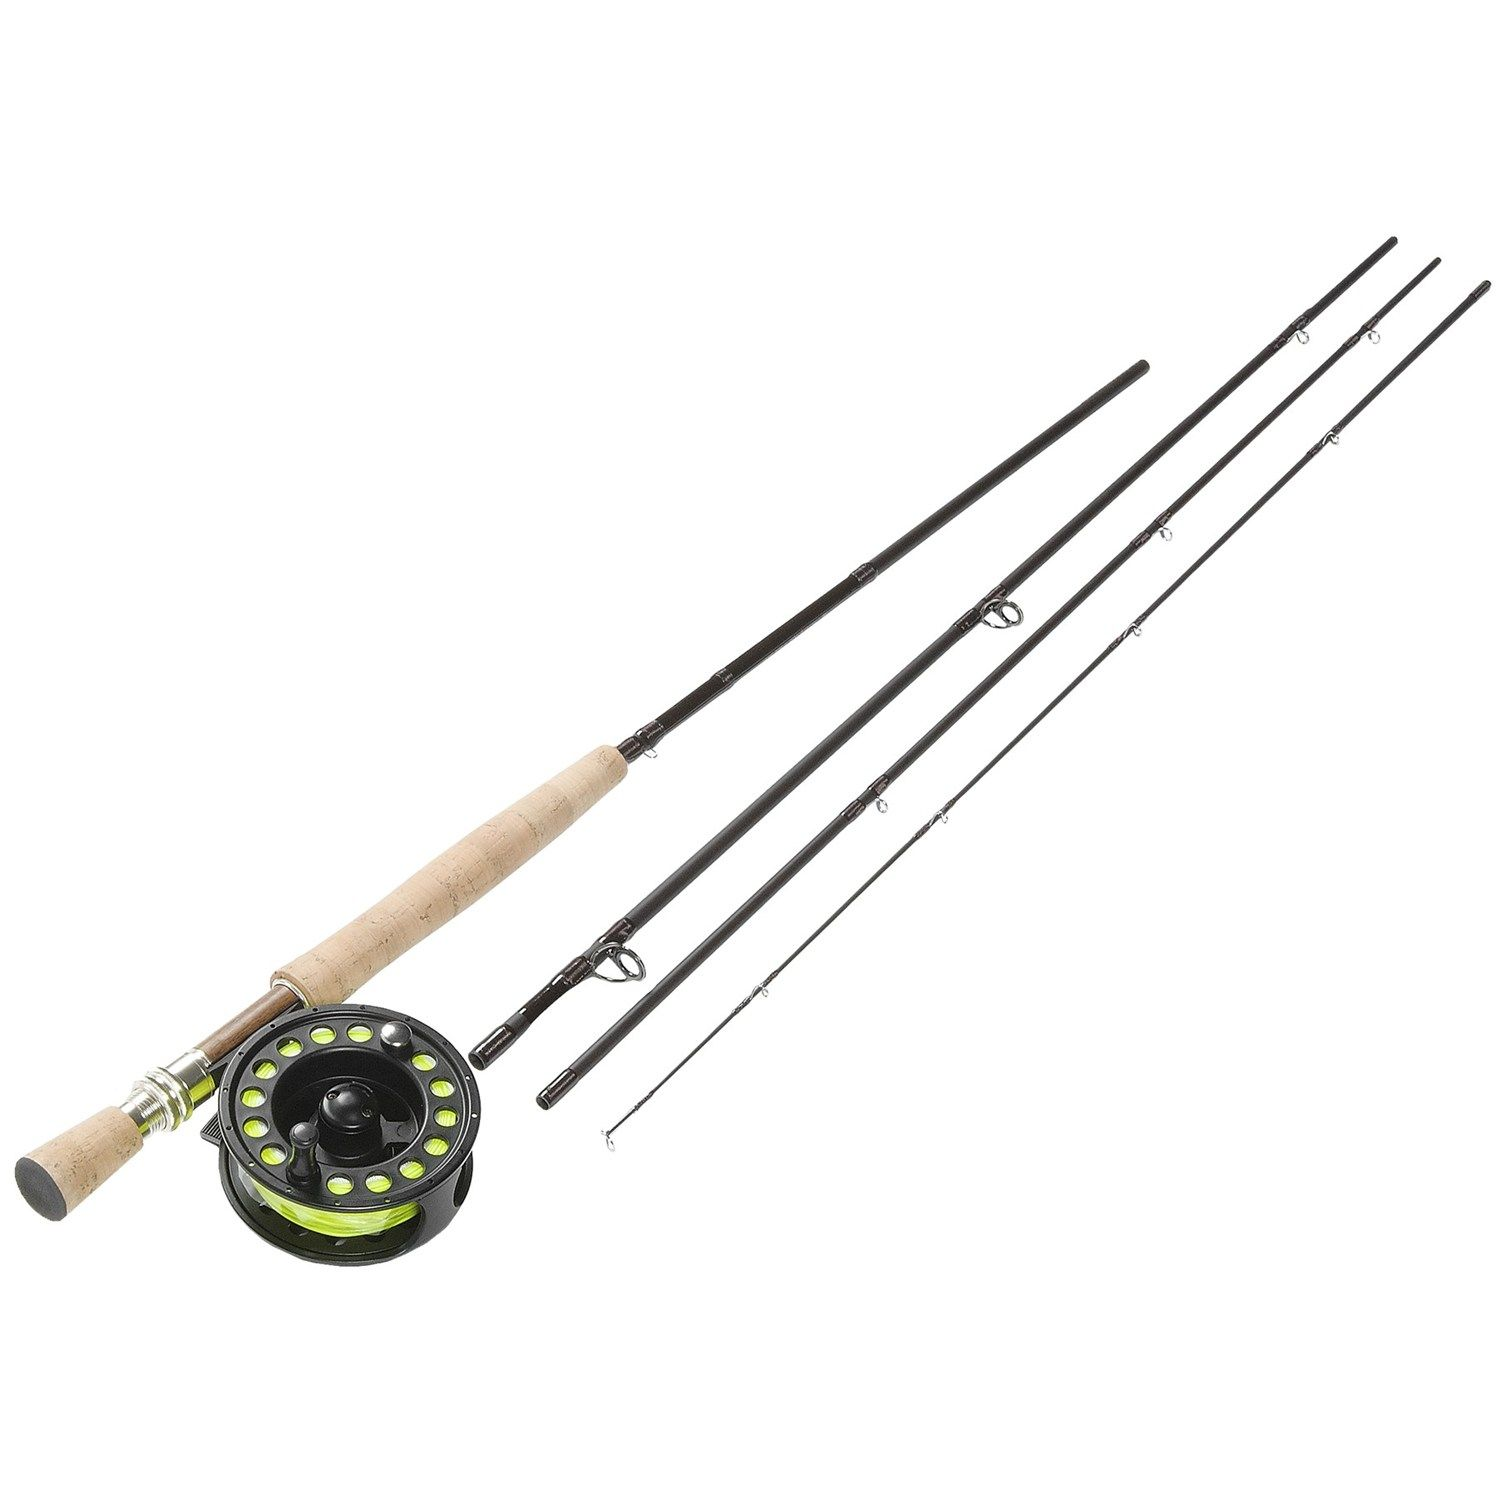 Fenwick Hmx Fly Fishing Rod And Reel 4 Piece Combo 179 95 Fenwick Hmx 4 Piece Fly Combo Is A Complete Fly Fishing Rods Fly Fishing Fishing Rods And Reels